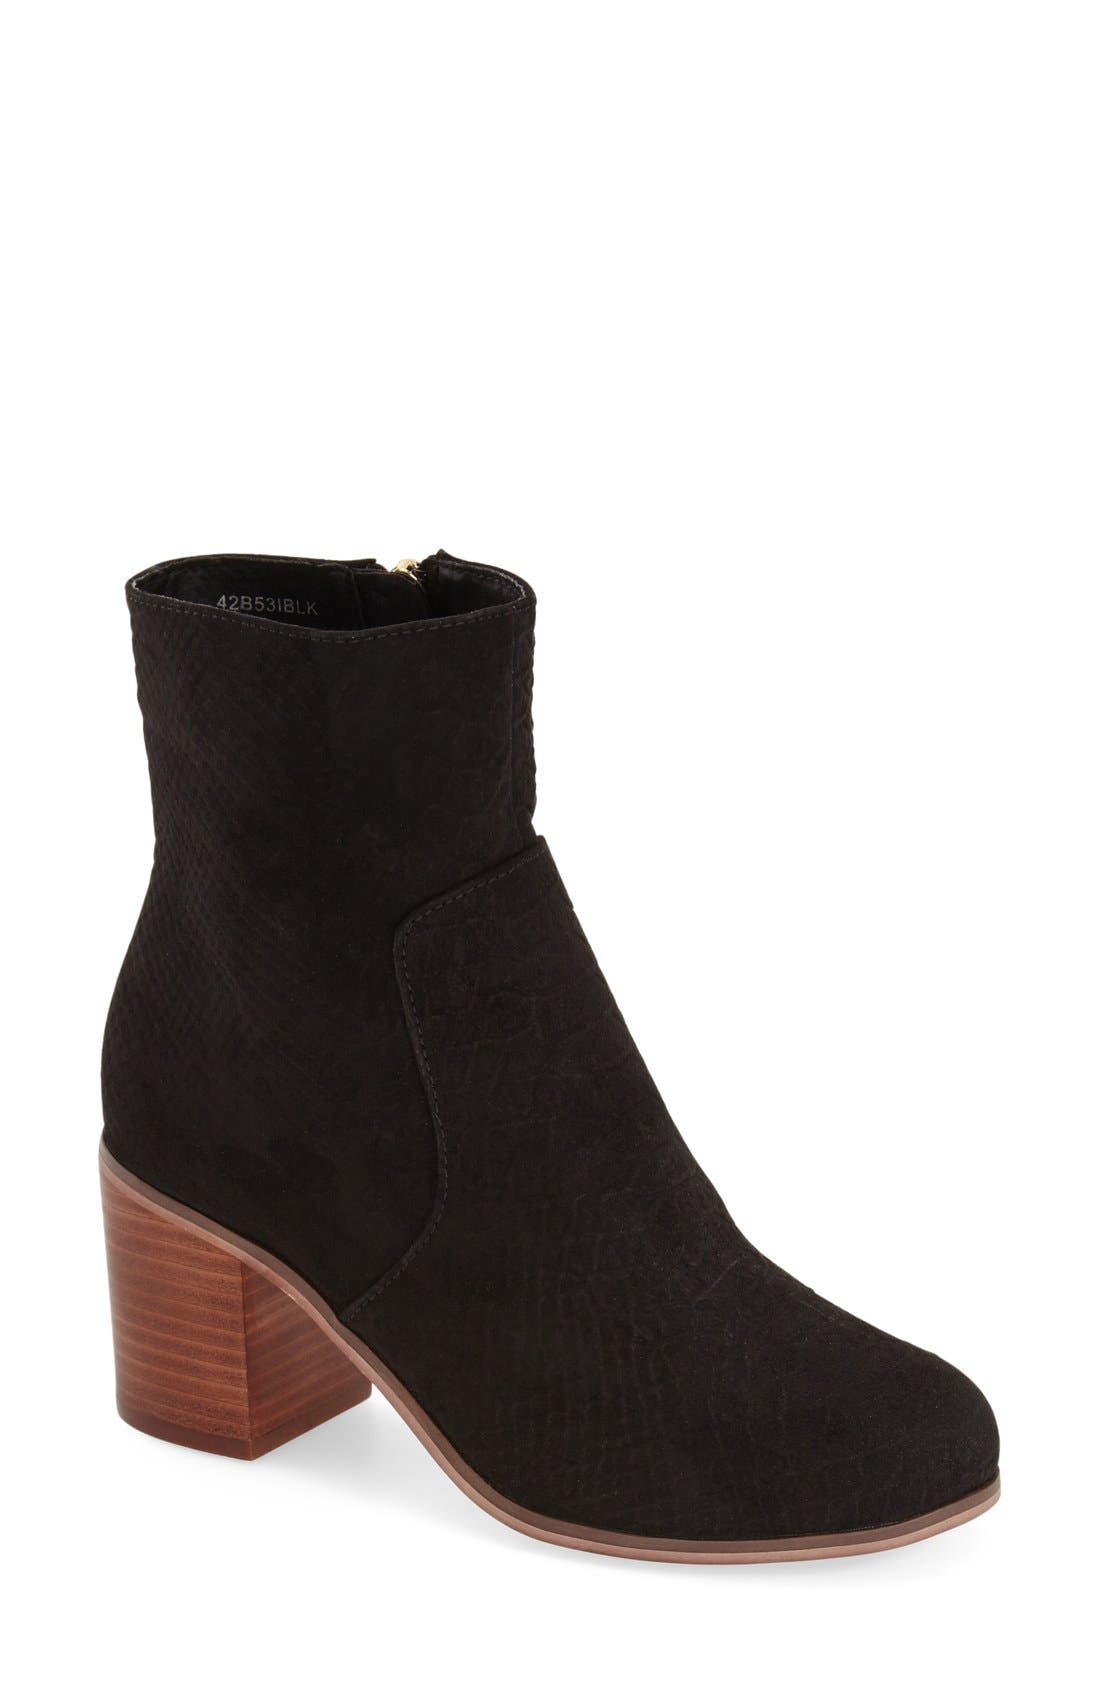 Main Image - Topshop 'Bless' Ankle Bootie (Women)